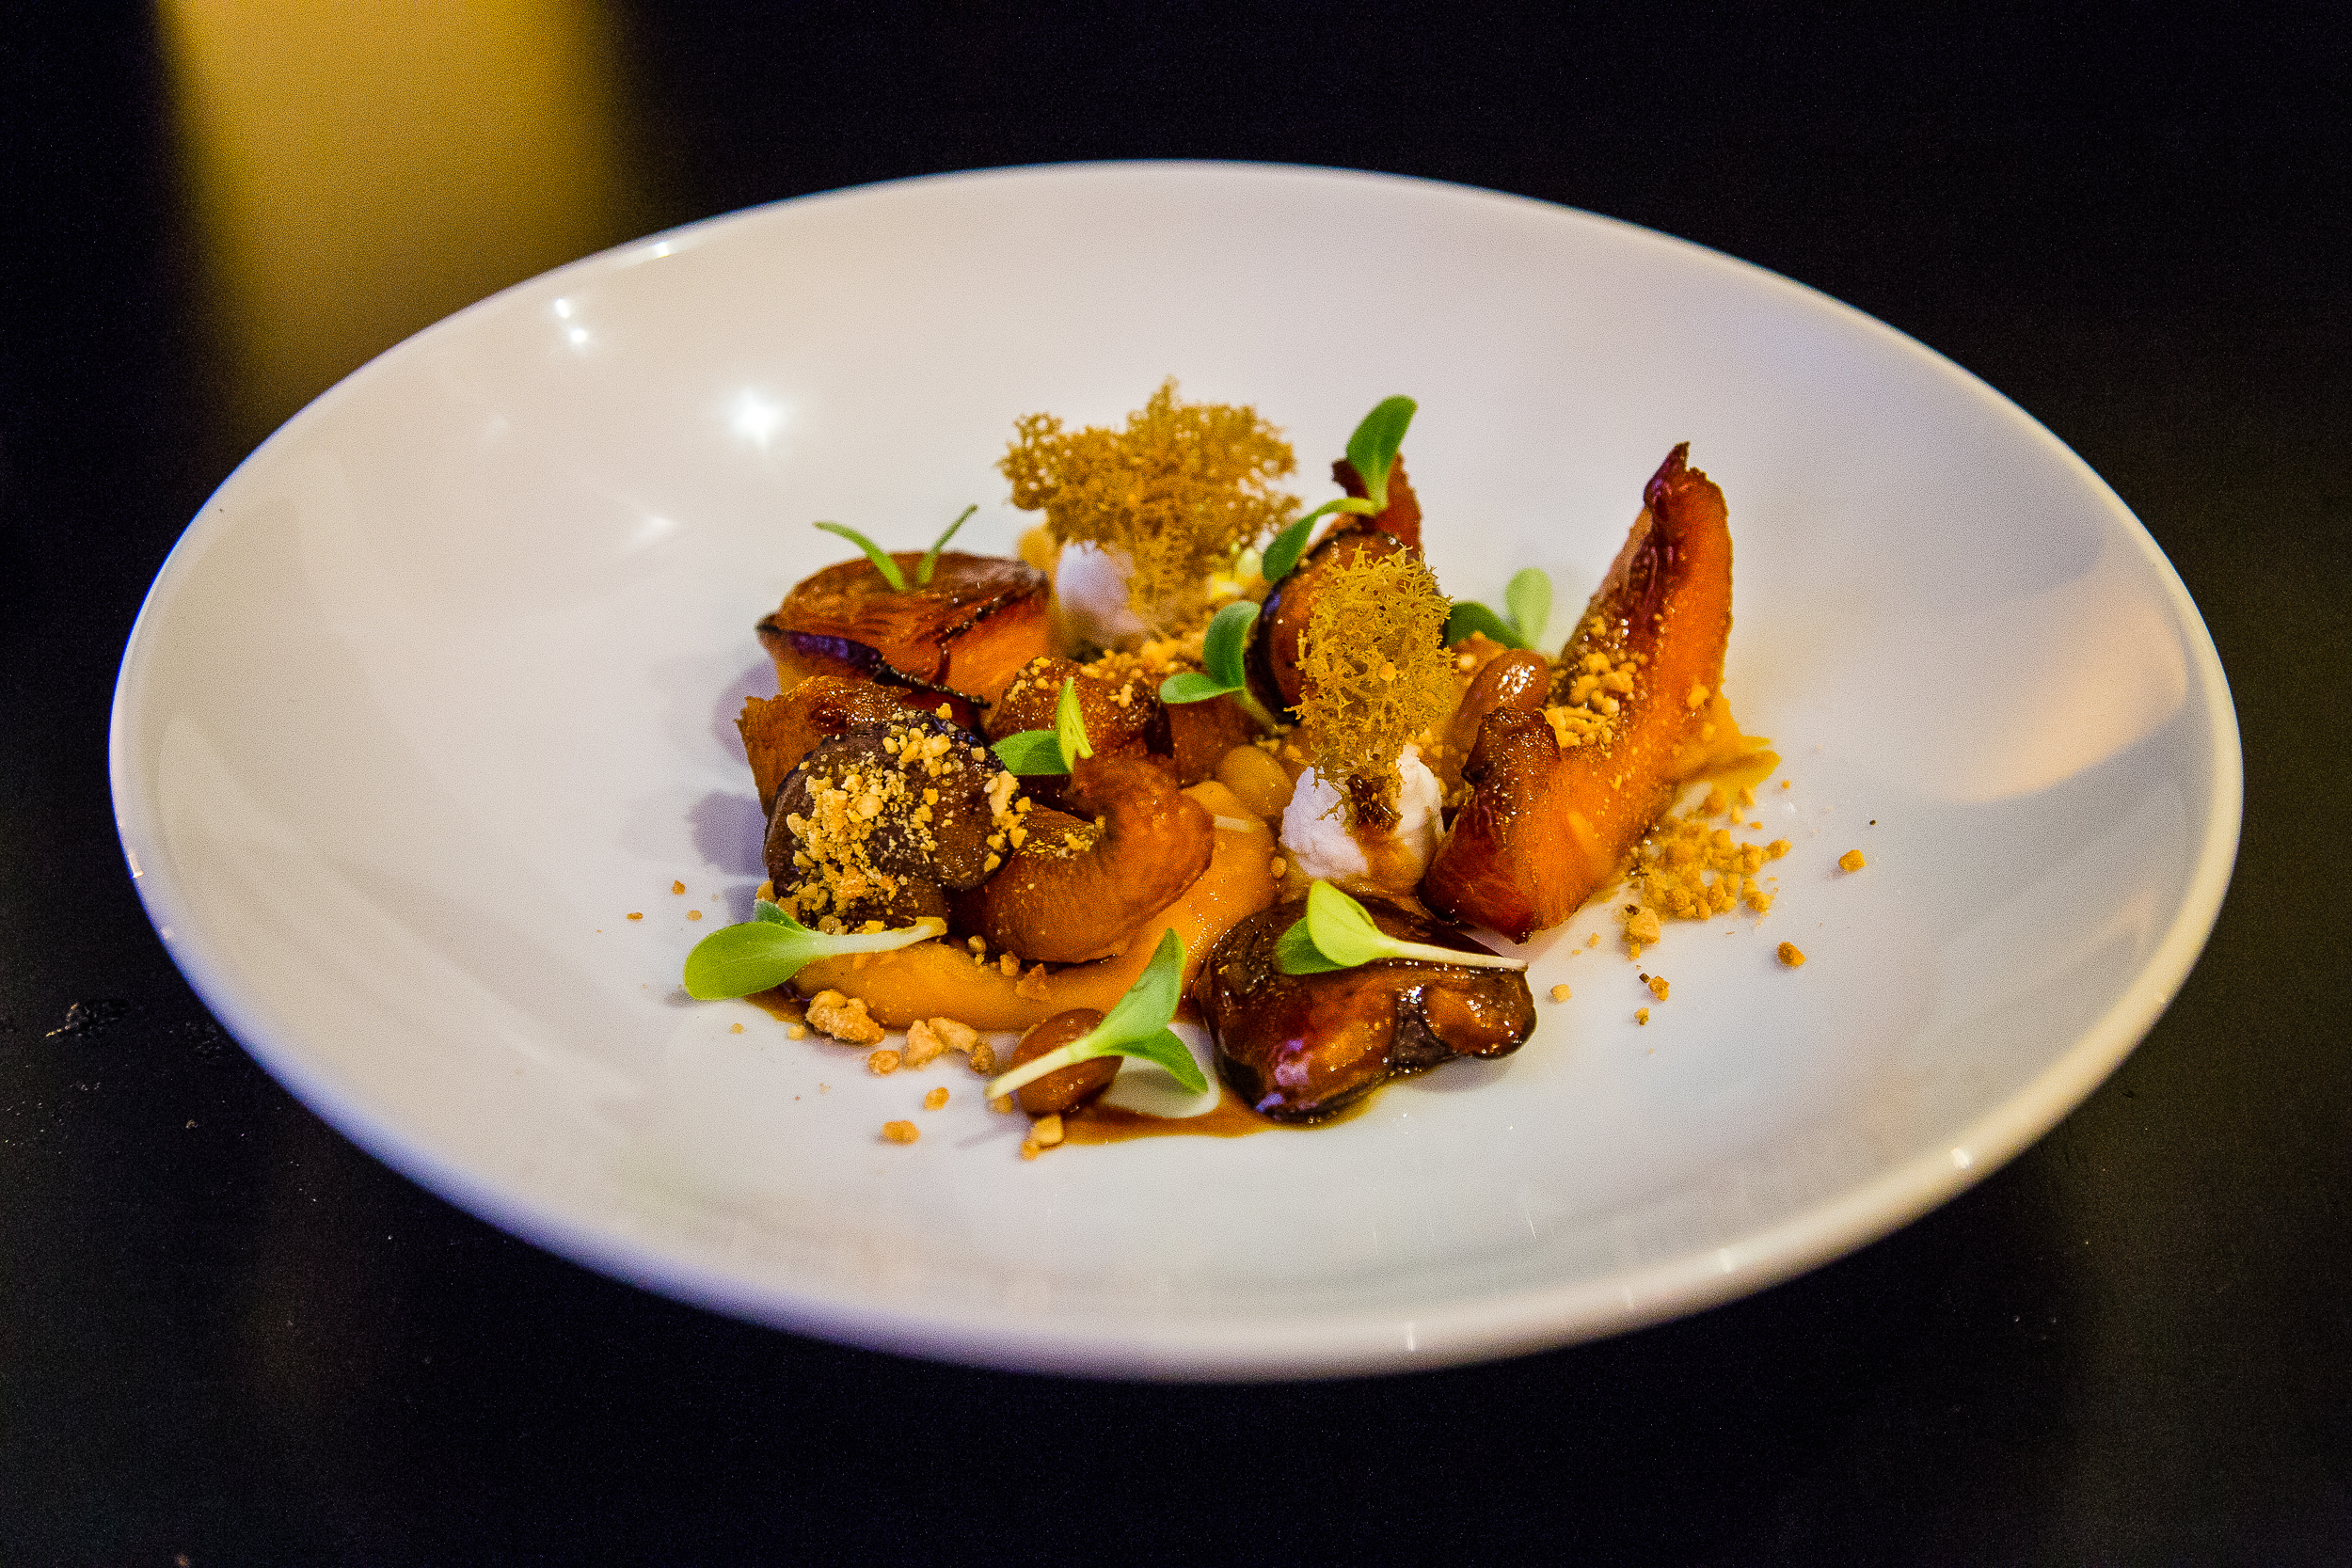 Pumpkin, Pumpkin Purée, Pickled Peanuts